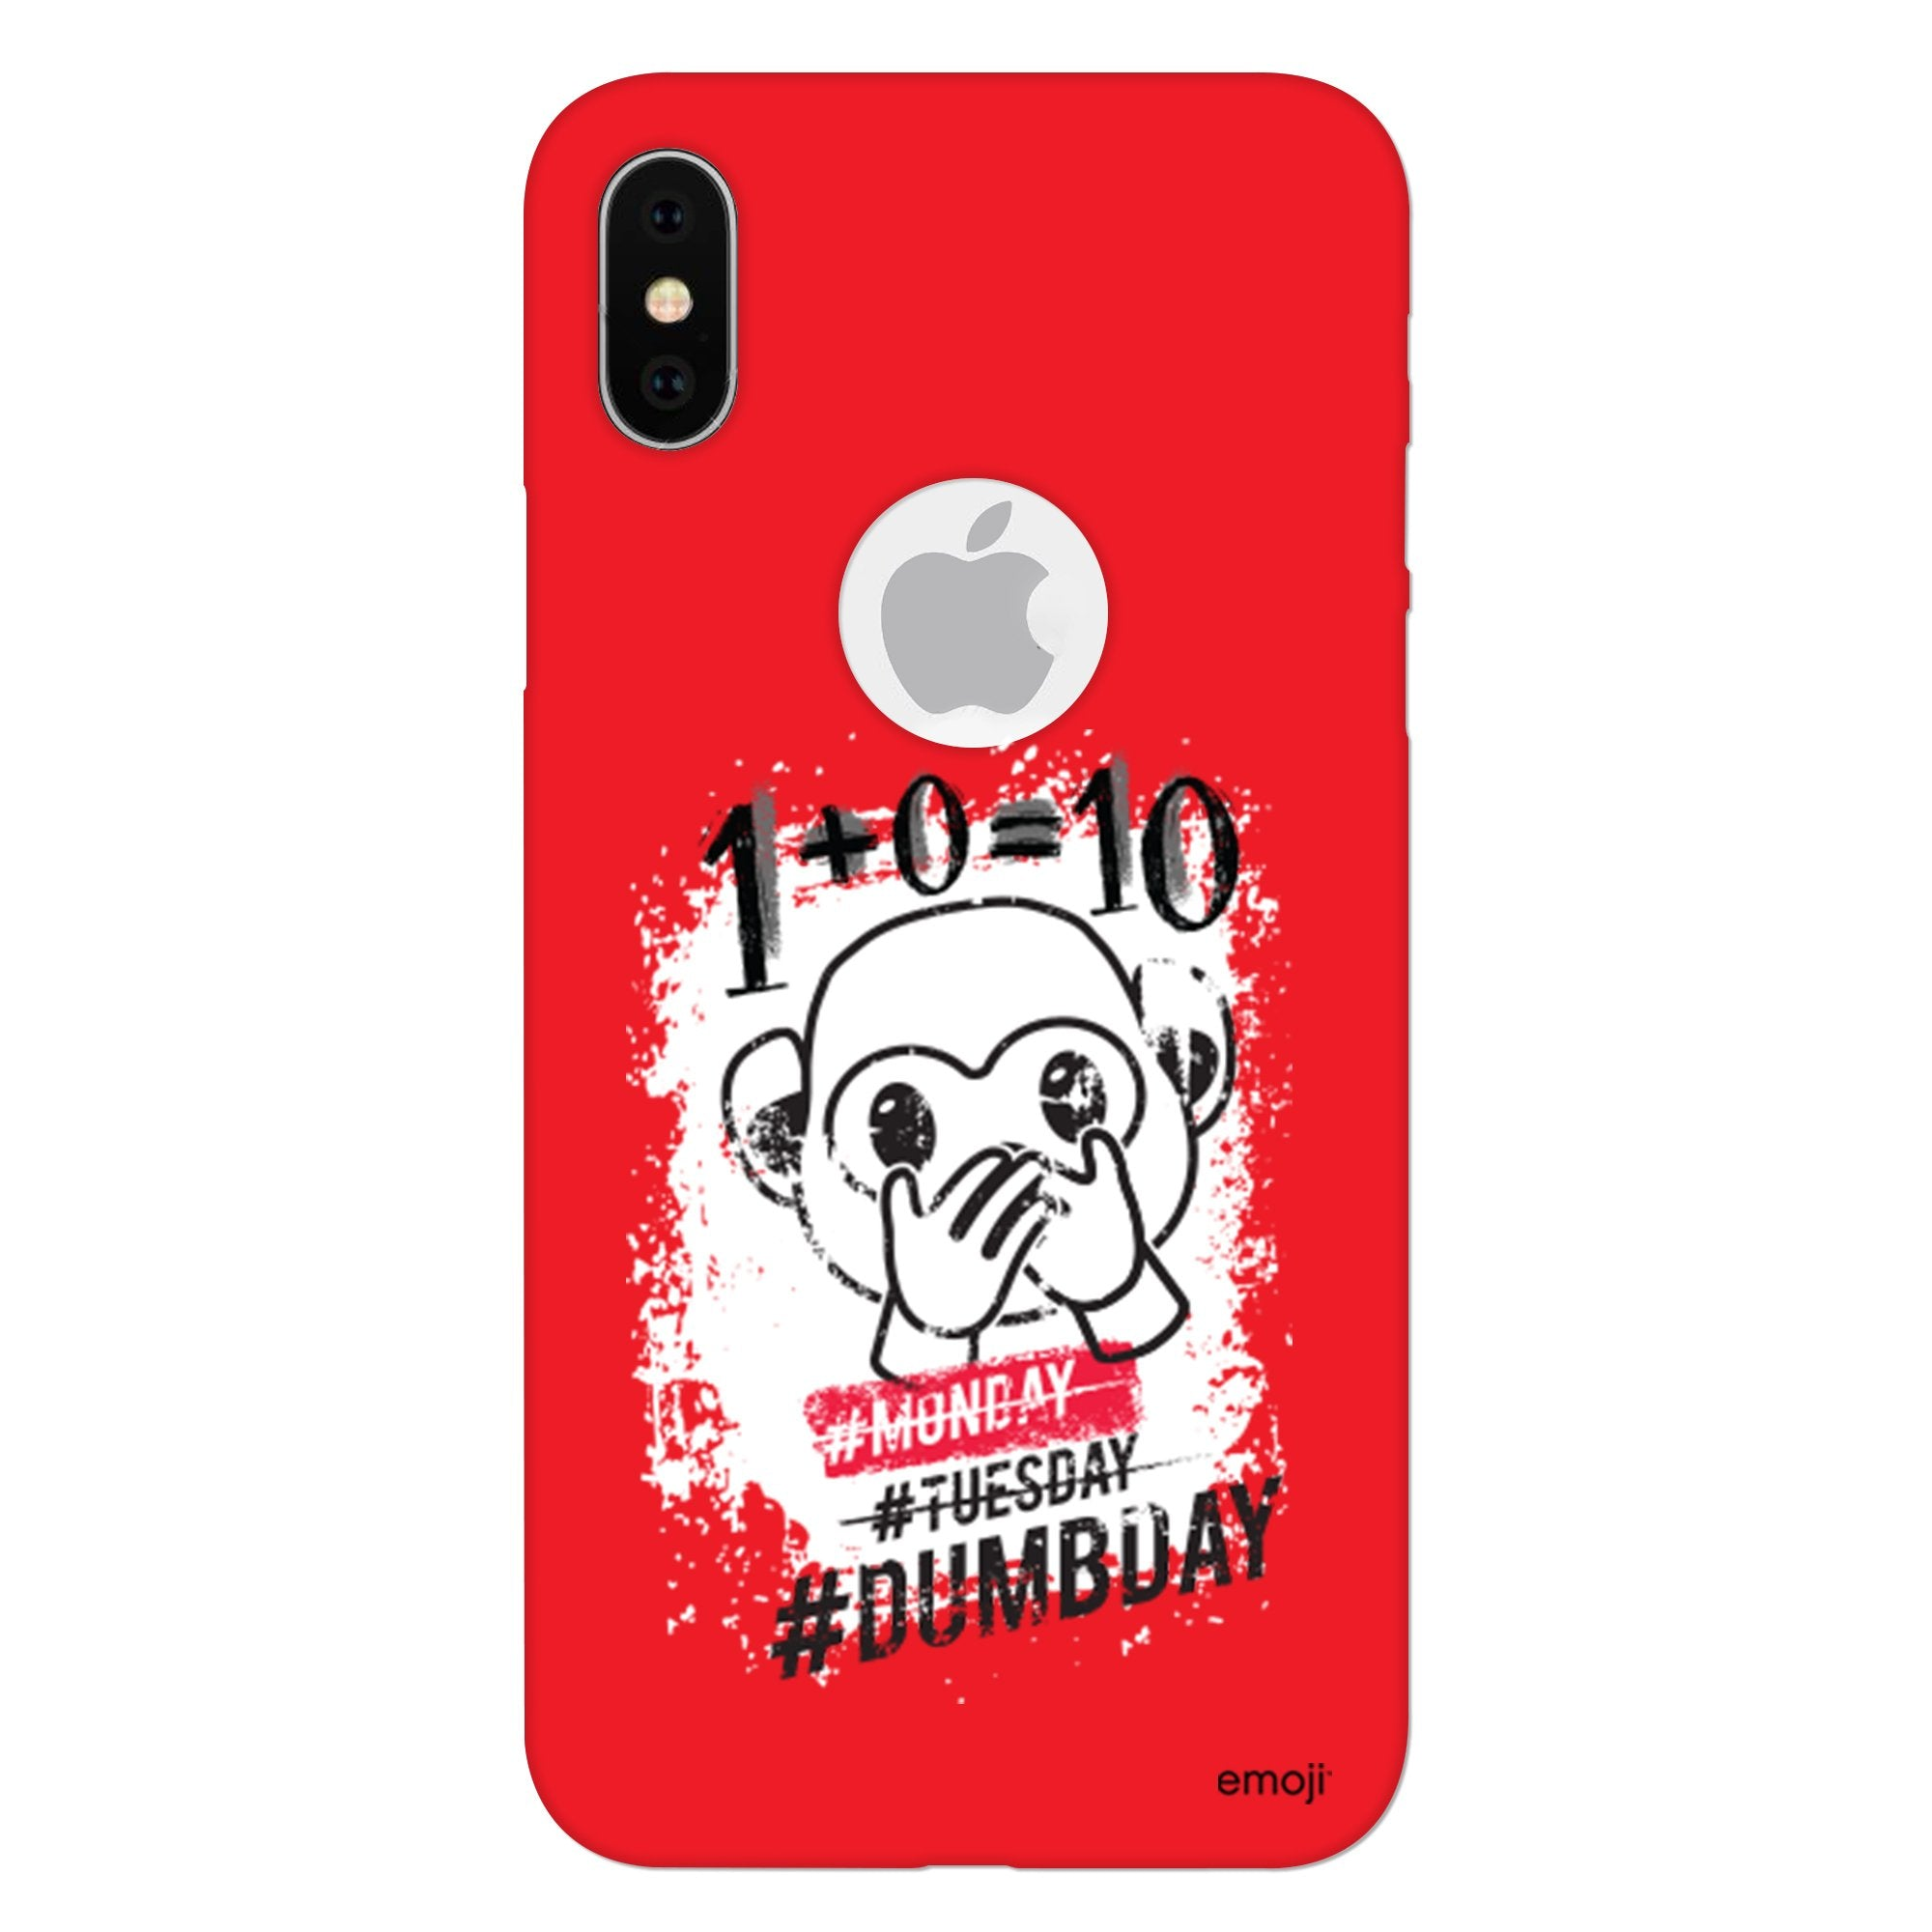 Official Licensed emoji Printed Mobile Case - DUMBDAY